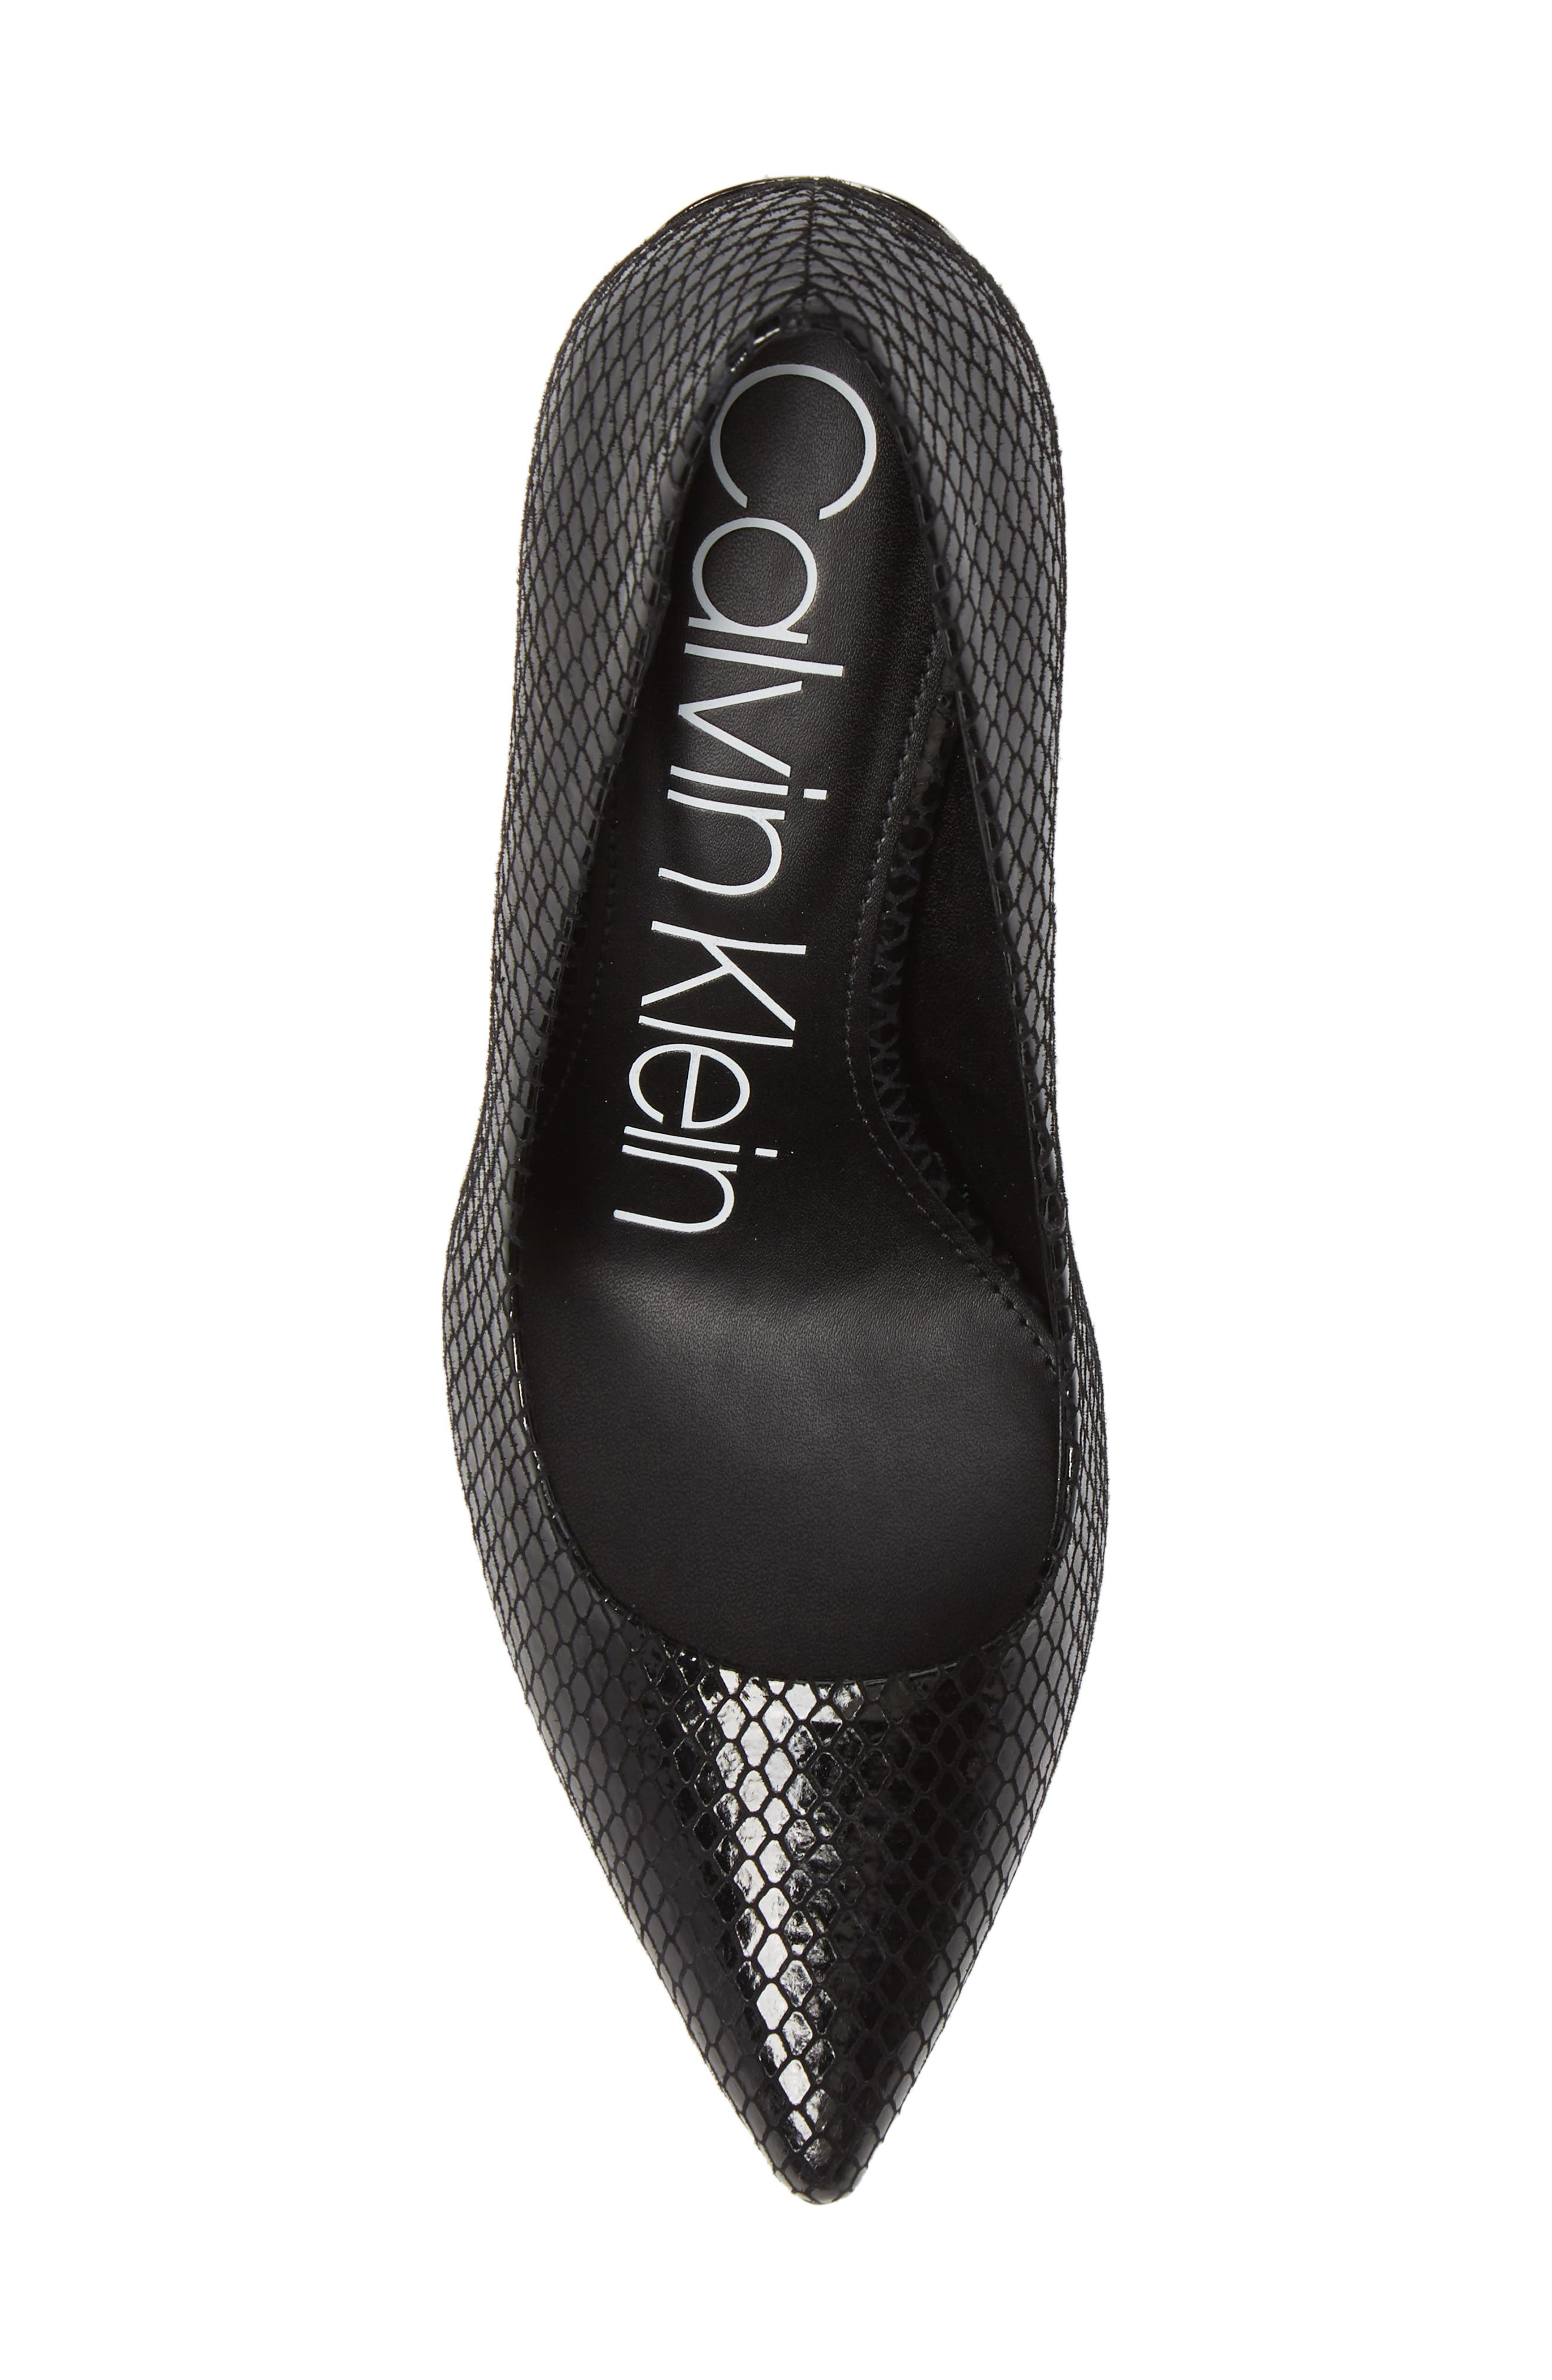 CALVIN KLEIN,                             'Gayle' Pointy Toe Pump,                             Alternate thumbnail 5, color,                             BLACK SNAKE PRINT LEATHER